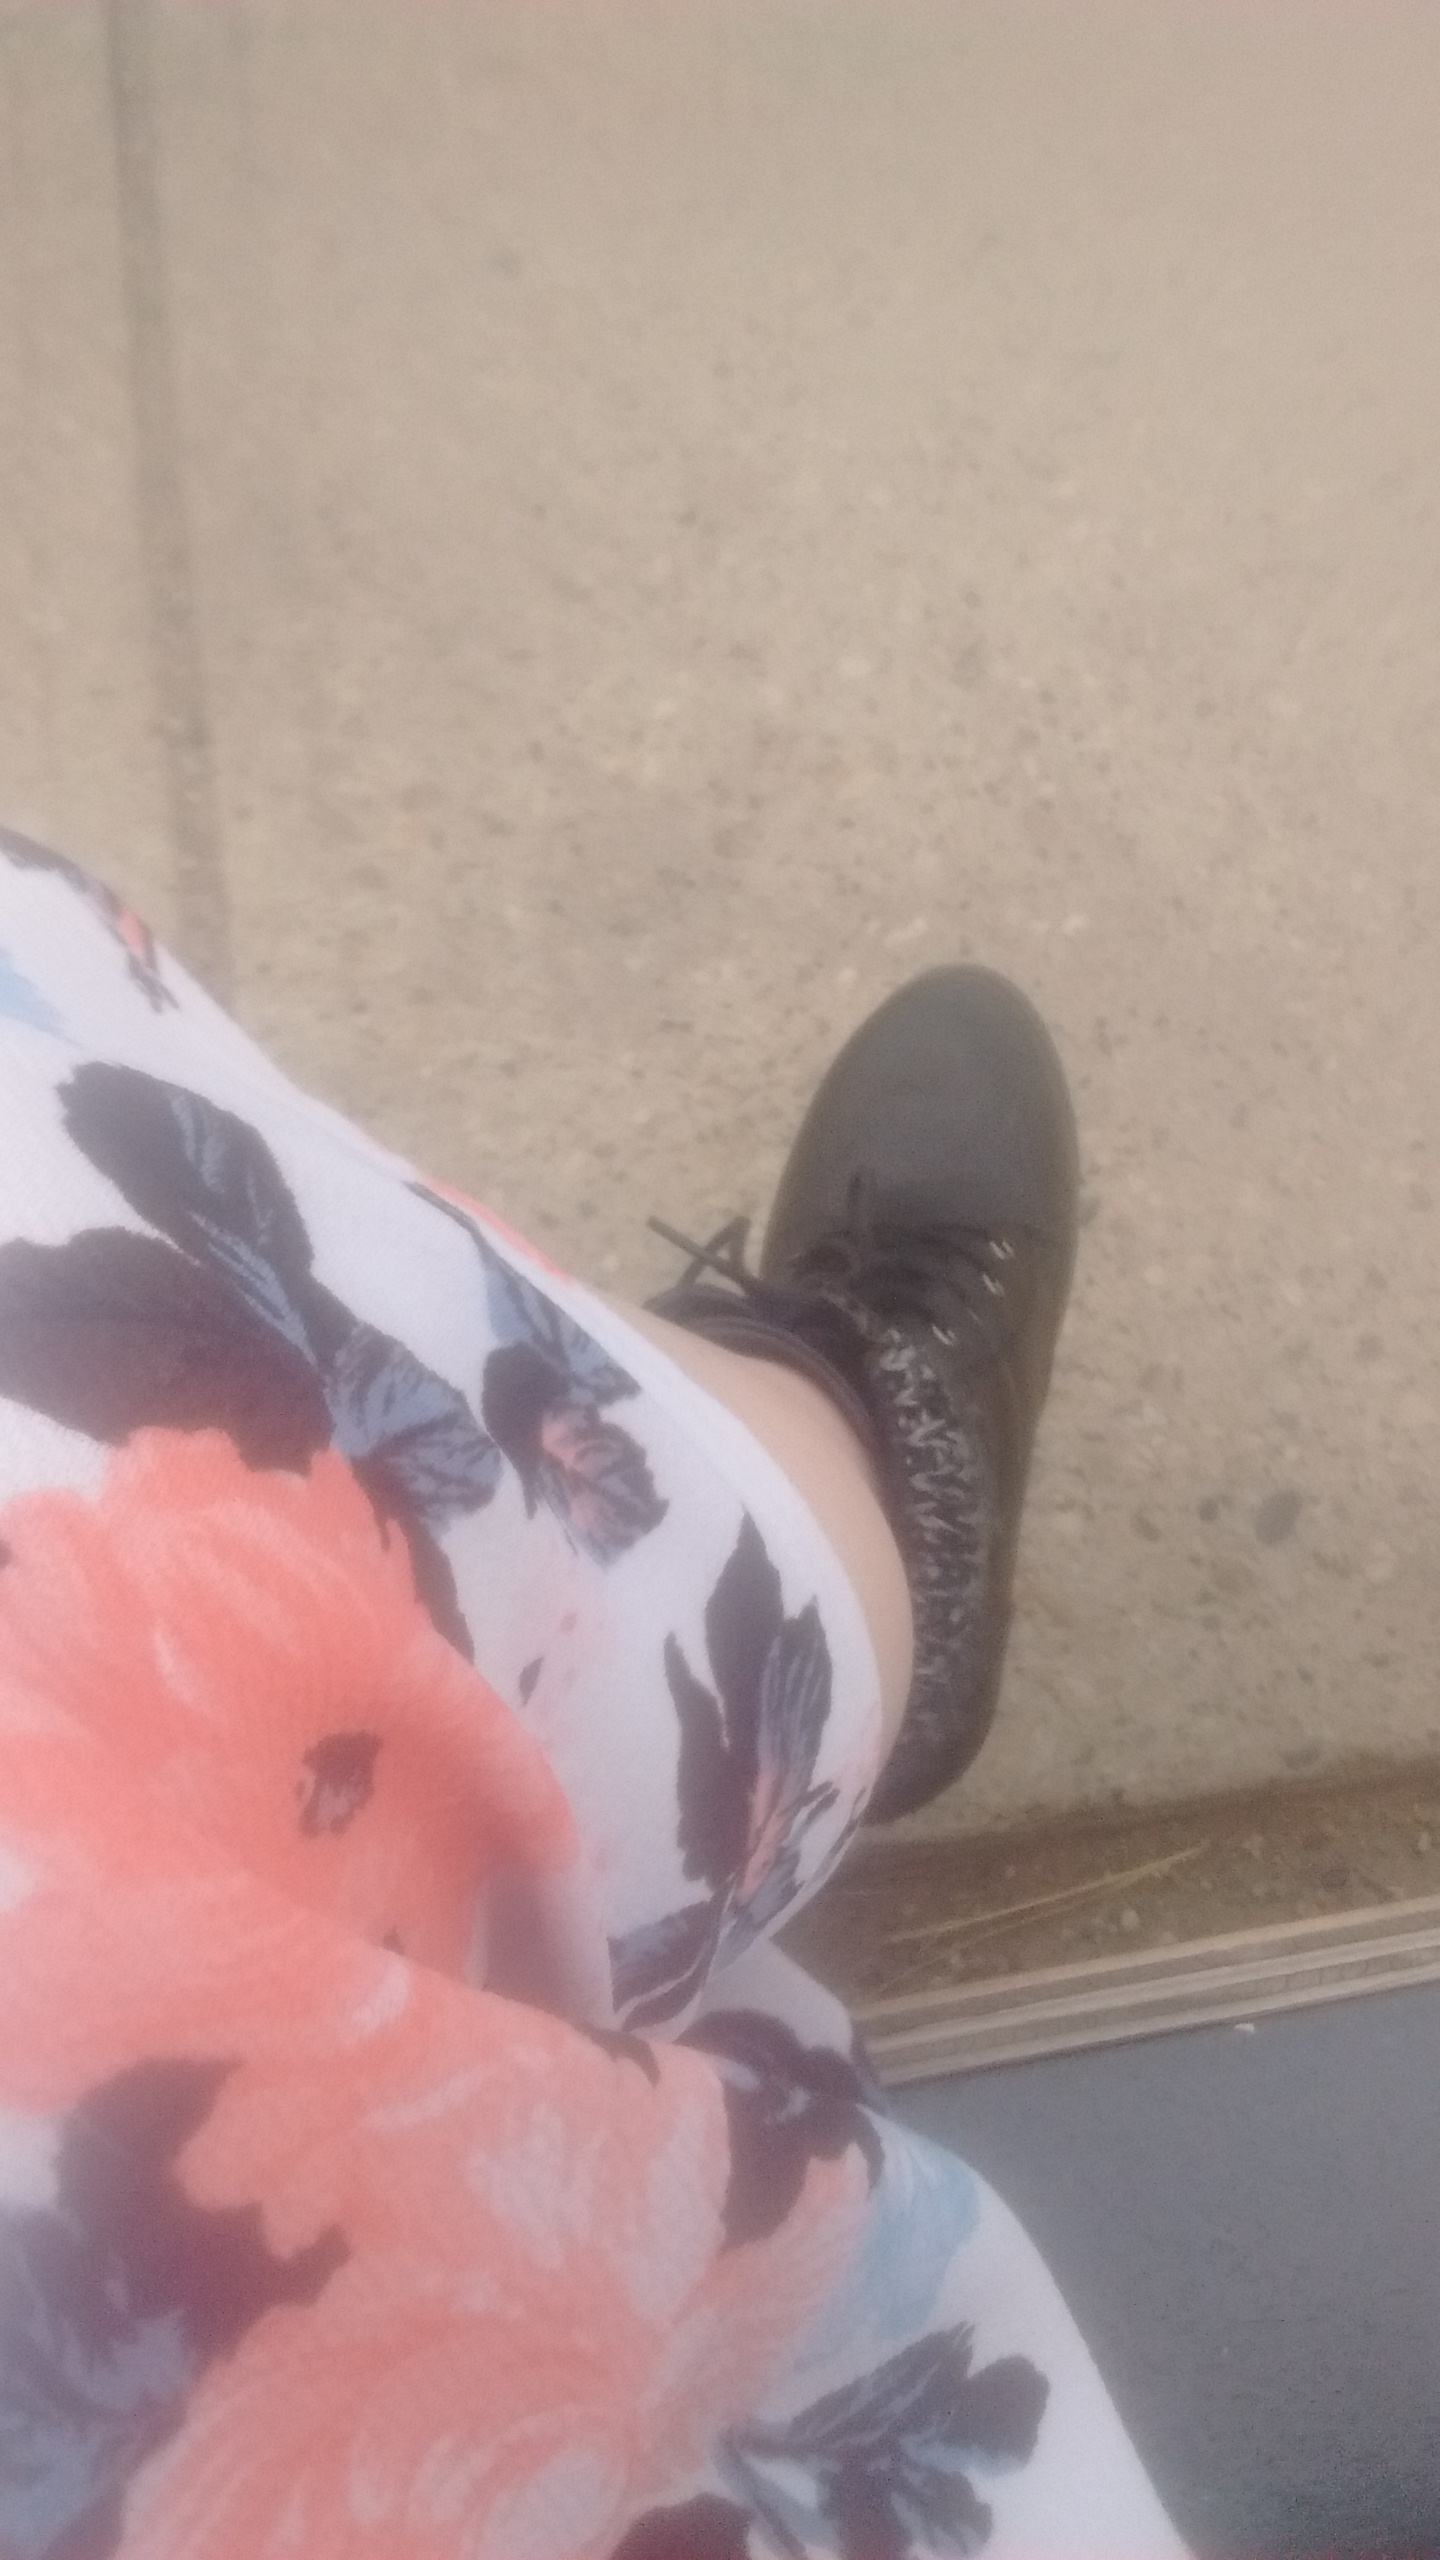 No flowery summer dress is complete without polished combat boots.